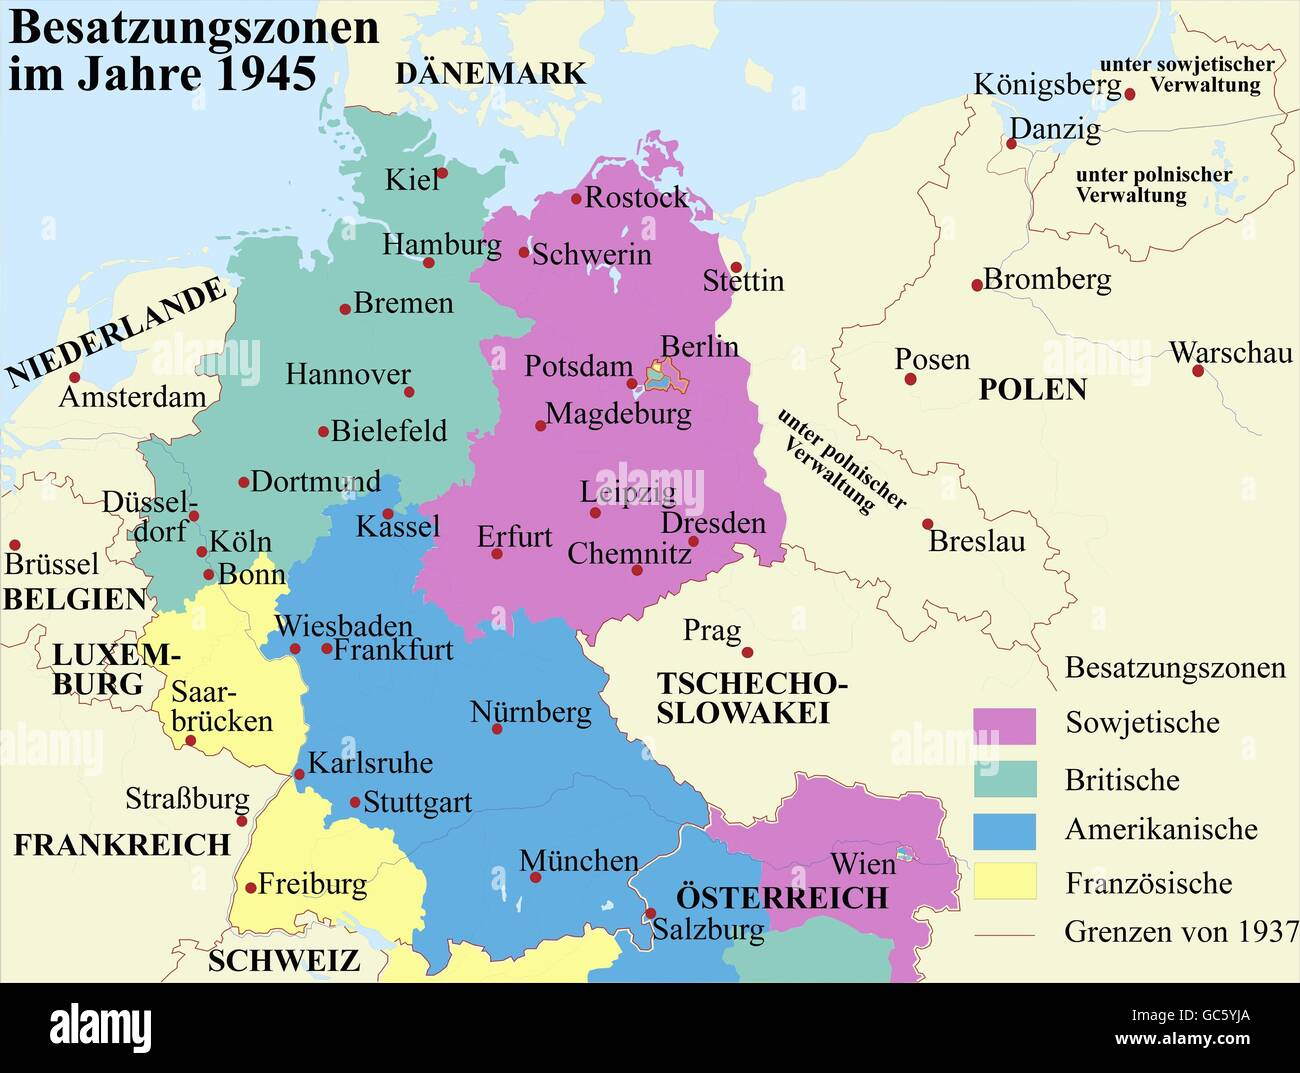 cartography historical maps modern times germany and austria zones of occupation 1945